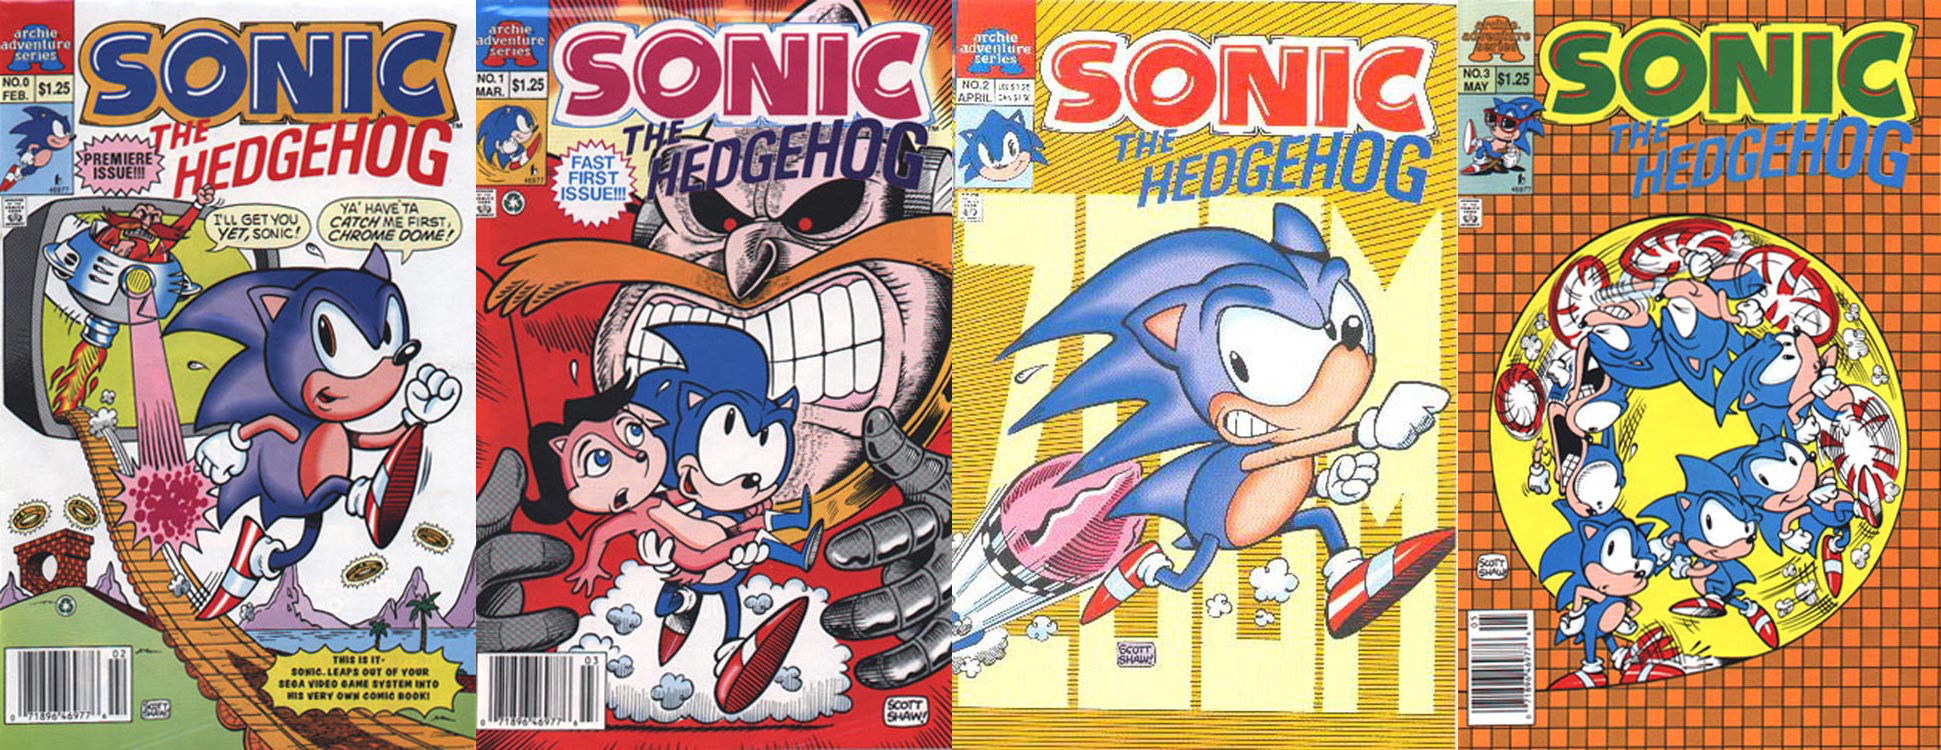 Archie Comics Reveals Sonic The Hedgehog Origin Story Arc Could Classic Sonic Be Making A Comeback Segabits 1 Source For Sega News